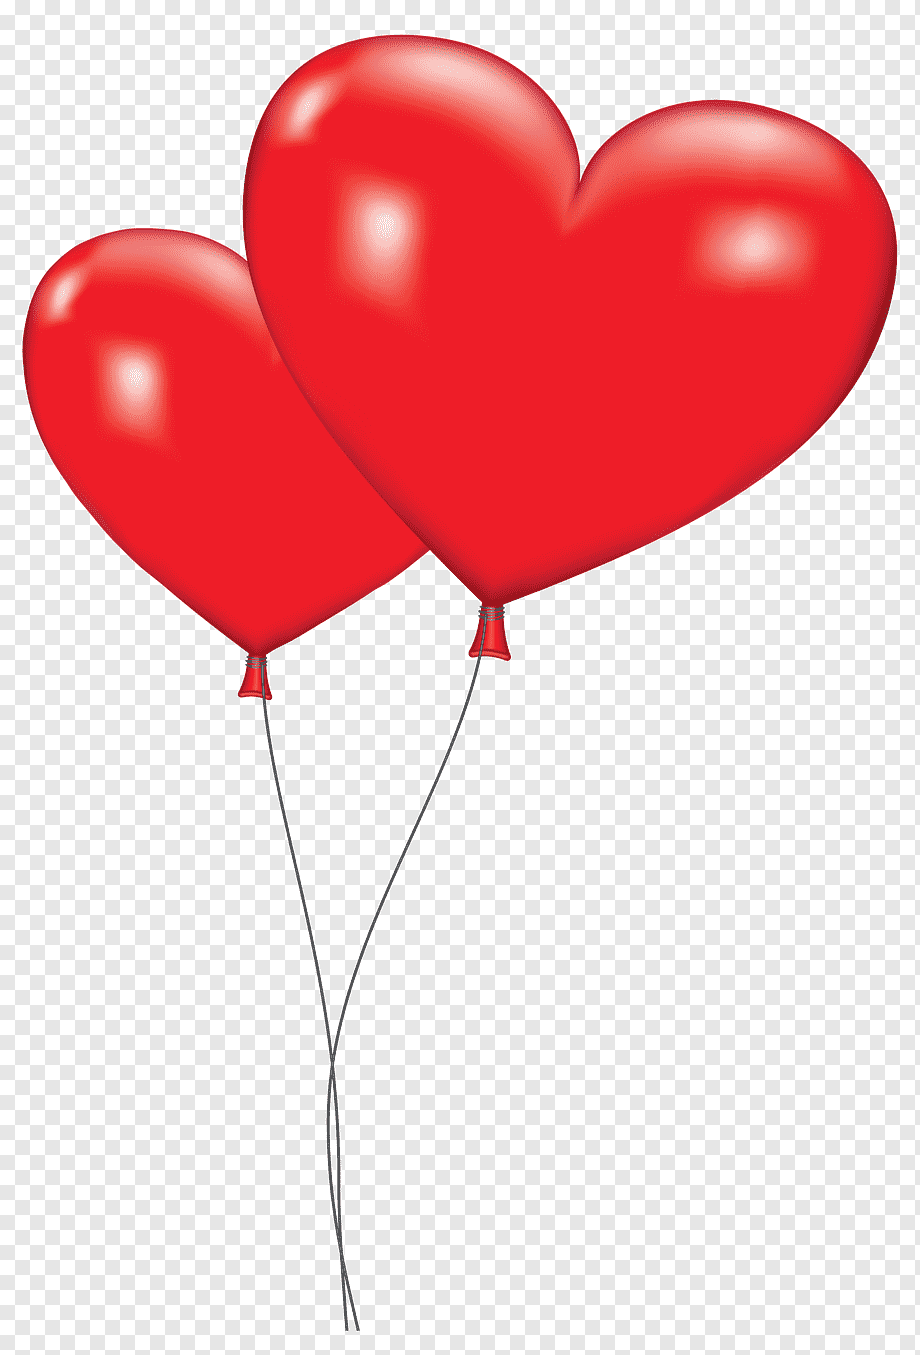 Balon Love Png : balon, Balloon,, Heart, Balloon, Balloons,, Candle,, United, States, PNGWing